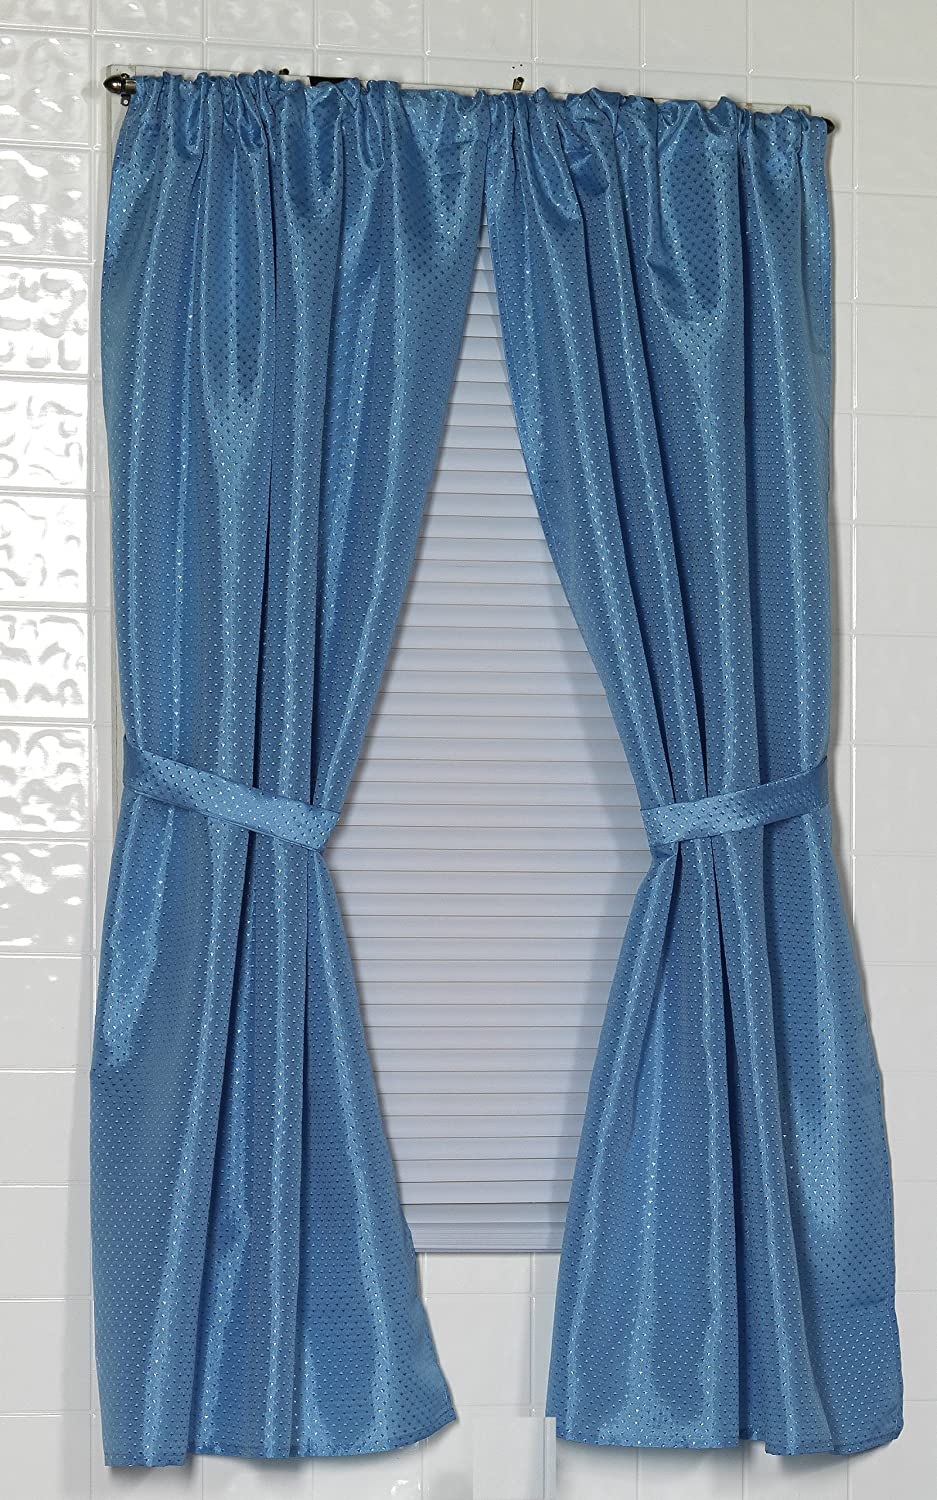 Amazon.com: Carnation Home Fashions Lauren Dobby Fabric Bathroom Window  Curtain, 34 Inch By 54 Inch, Light Blue: Home U0026 Kitchen